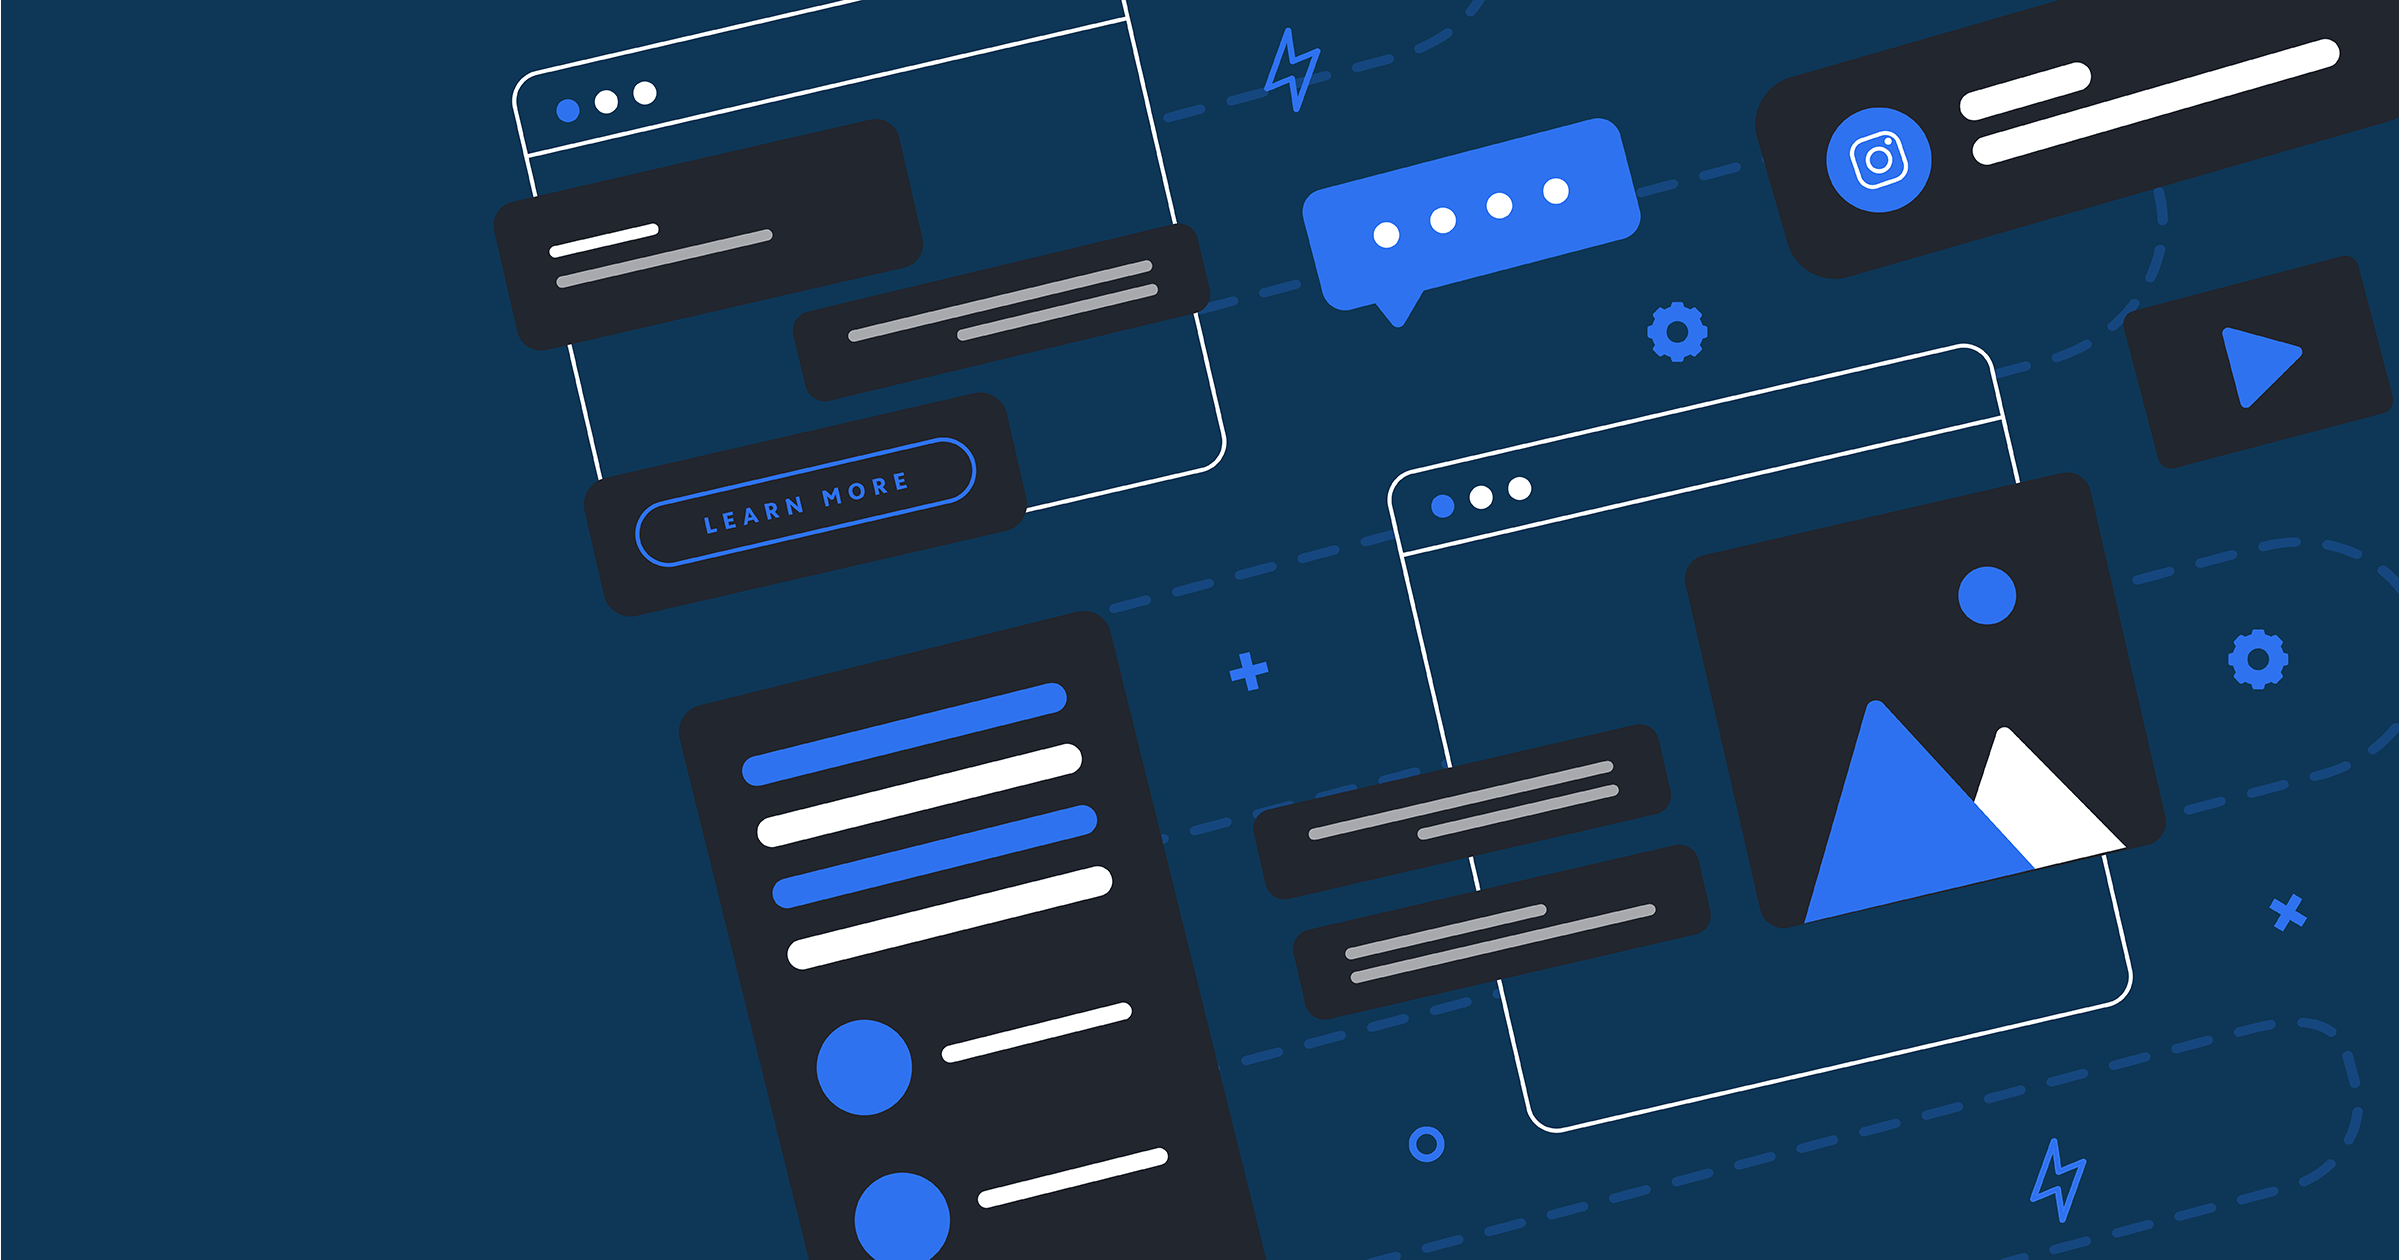 We've been hard at work making Blue Bite even better and easier to implement for brands. Here are some of the biggest updates released this spring.